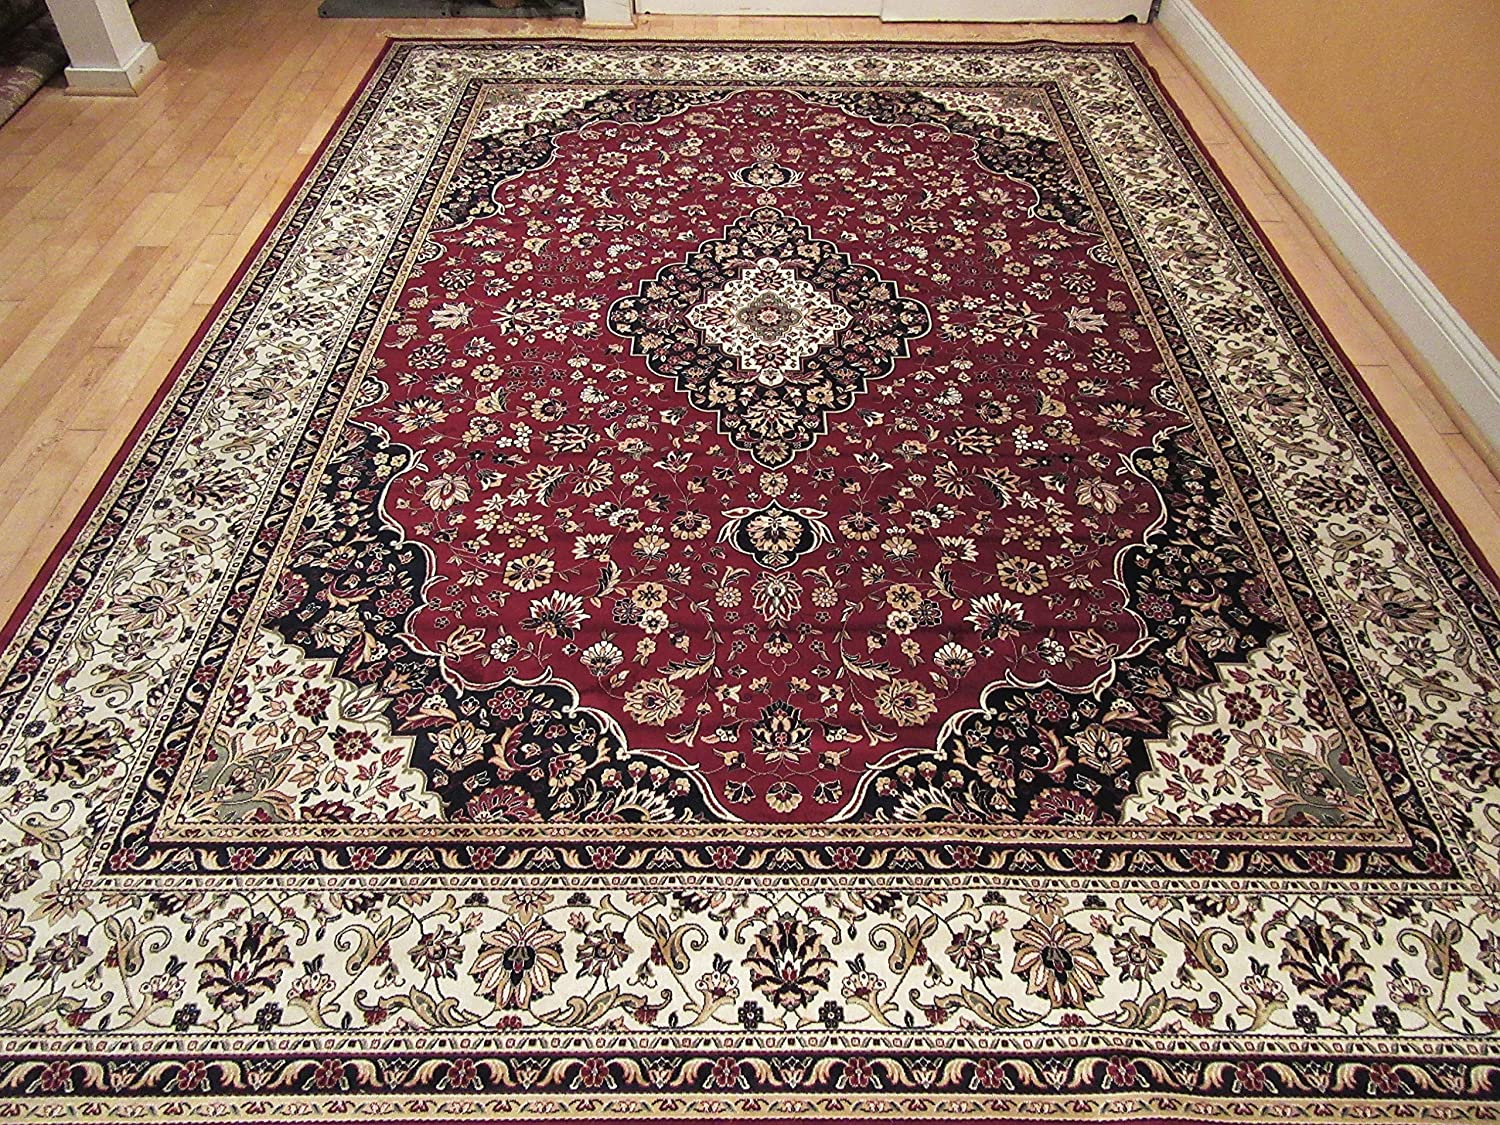 Persian silk ivory area rugs 6x8 red living room rug for Living room rugs amazon